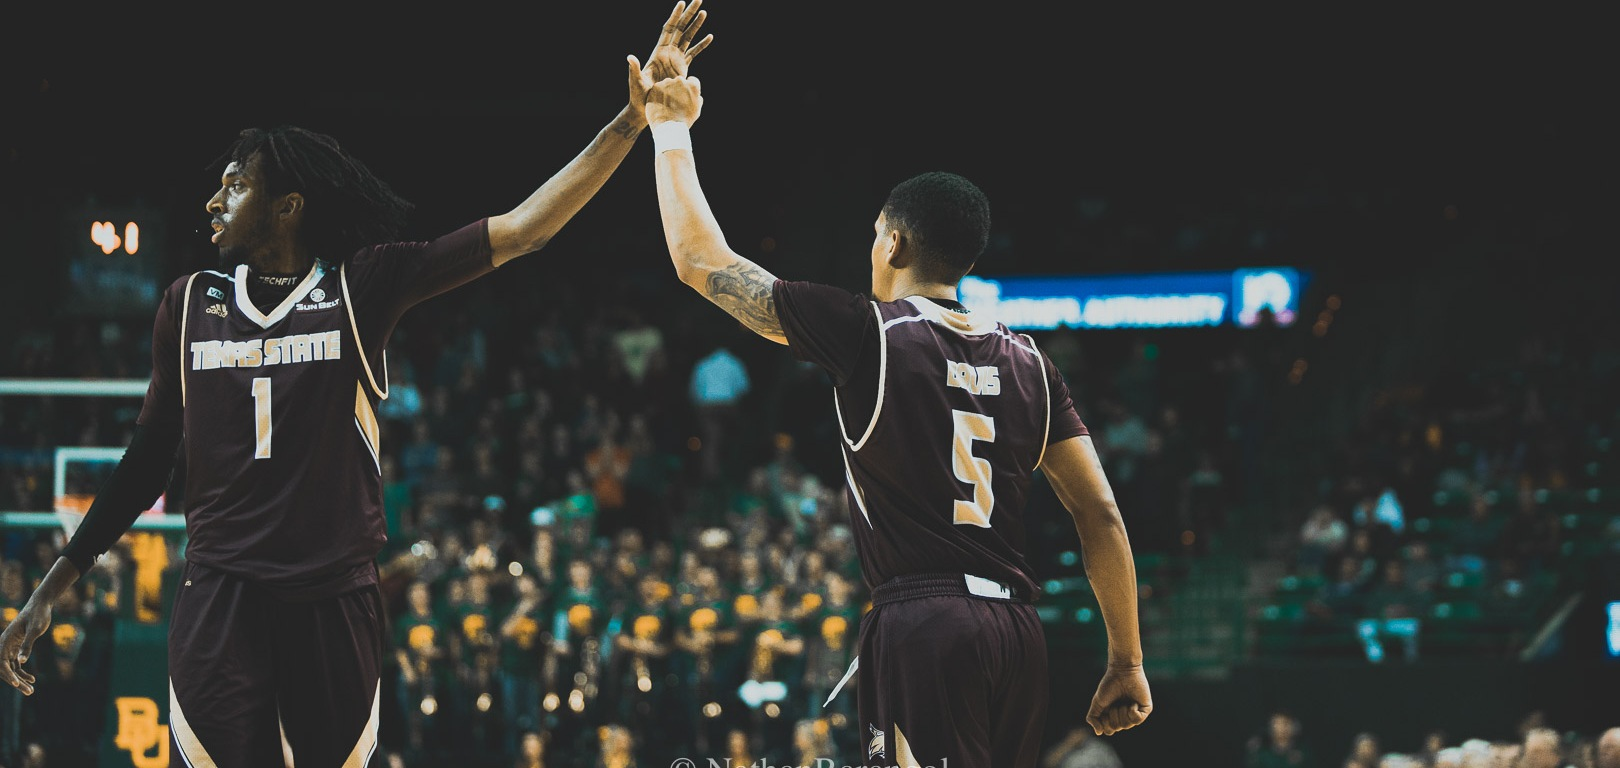 Texas State players Isaiah Small (left) high fives Marlin Davis (right) during the Bobcats non-conference road game in Waco against the Baylor Bears during the 2019-20 season with Baylor cheerleaders and fans in the background.